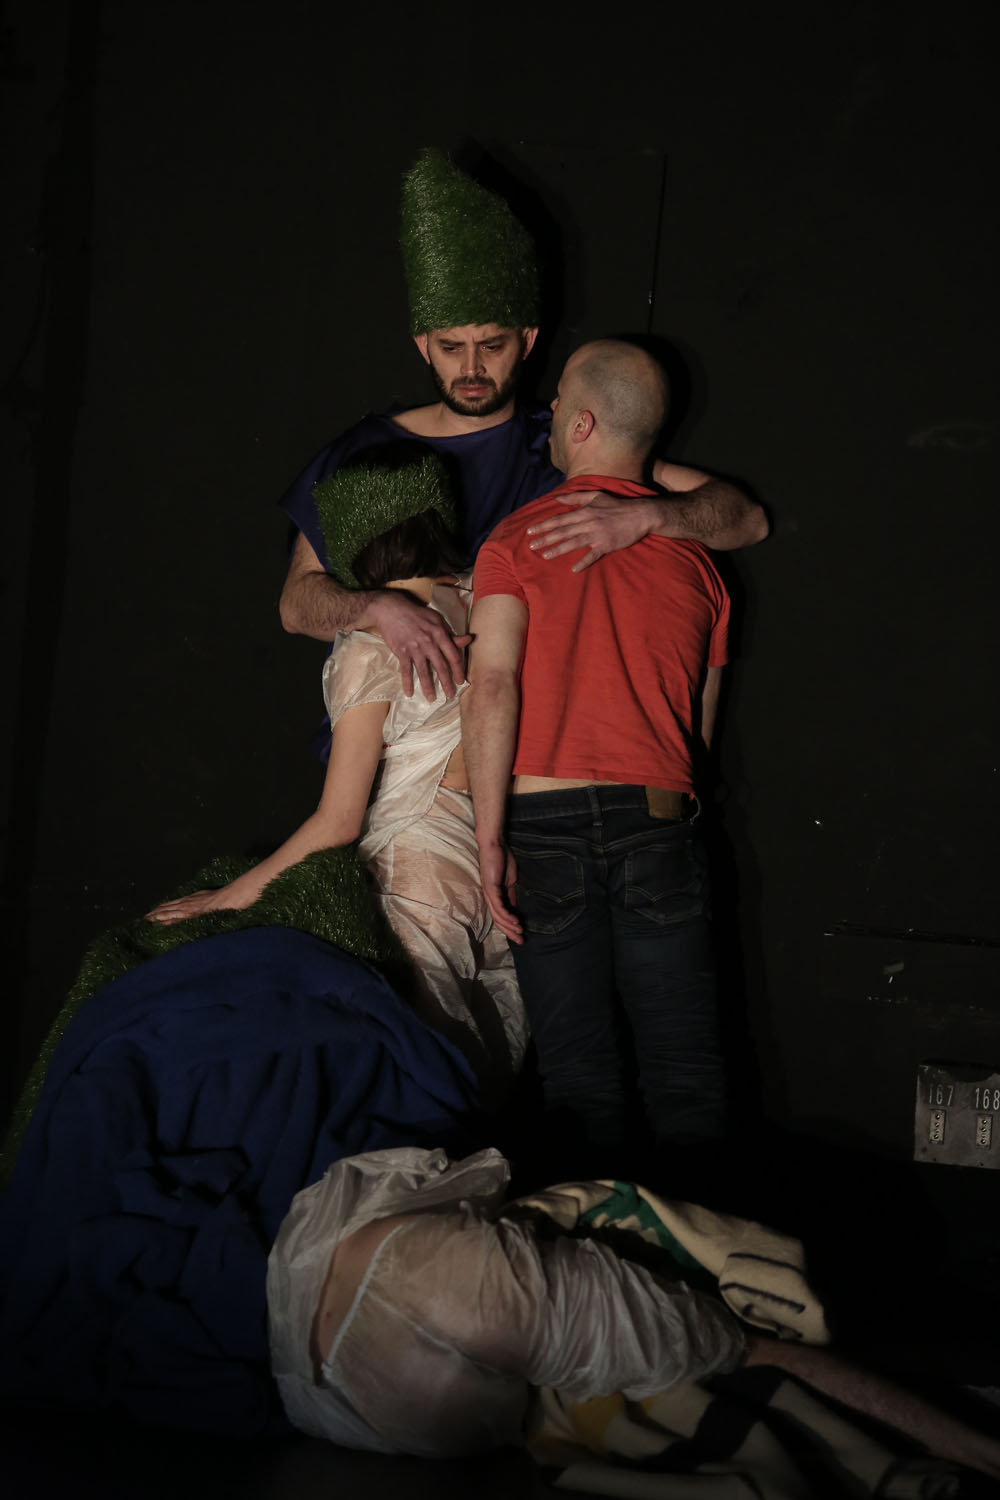 Christopher hugs performers Vanessa and Butch. Below, a mountain of fabrics where the performer Arantxa hides and another performer named Mar rests on the ground sideways. Vanessa and Christopher wear masks and hats made from plastic grass.